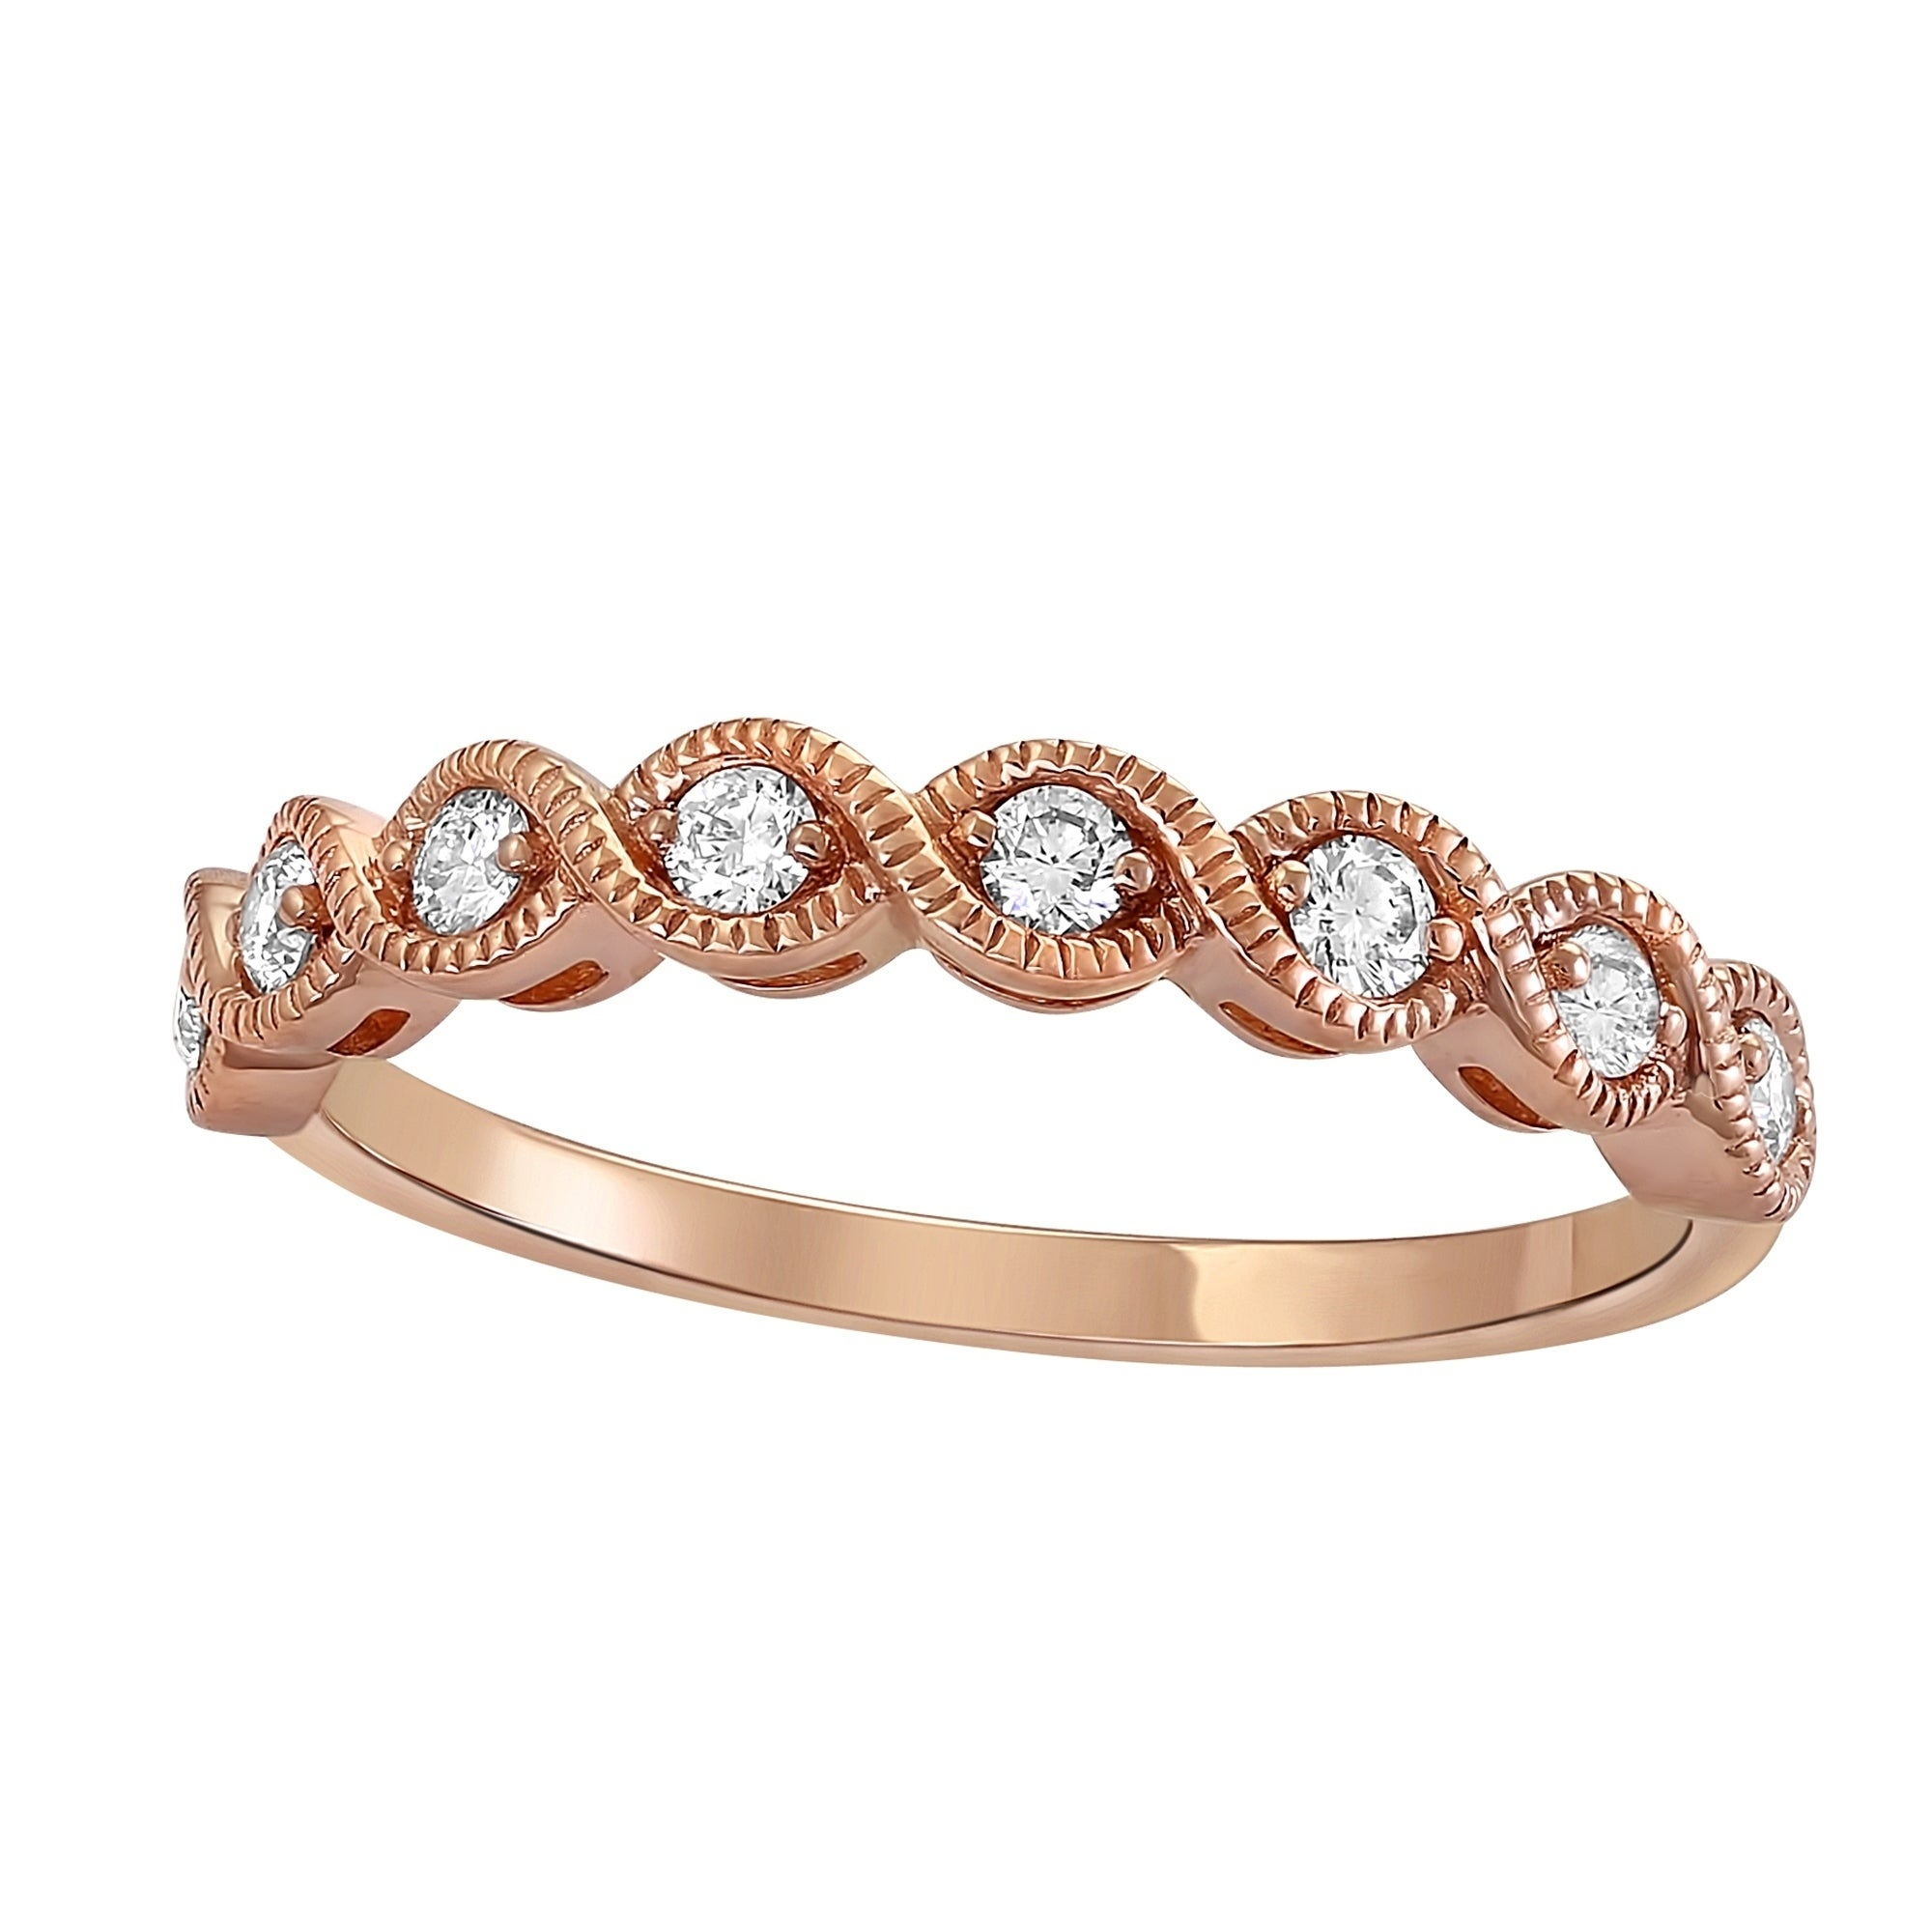 14K Rose Gold 1/4Ct Tdw Diamond Vintage Inspired Anniversary Band Ring –  White H I Within Most Recently Released Diamond Vintage Style Anniversary Bands In Rose Gold (View 7 of 25)